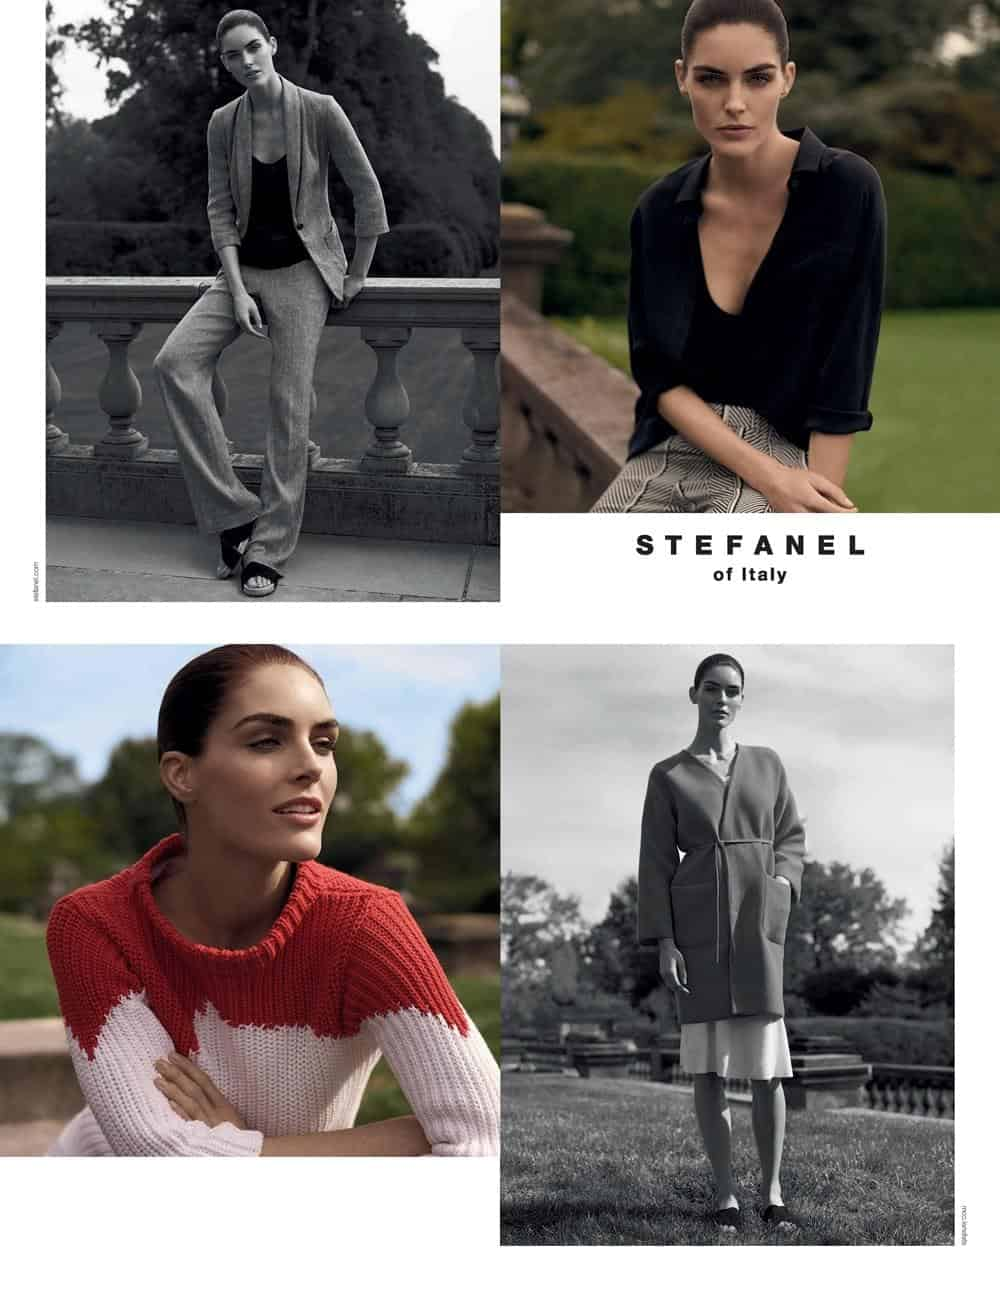 Stefanel_SS15_ADV_campaign-page-005